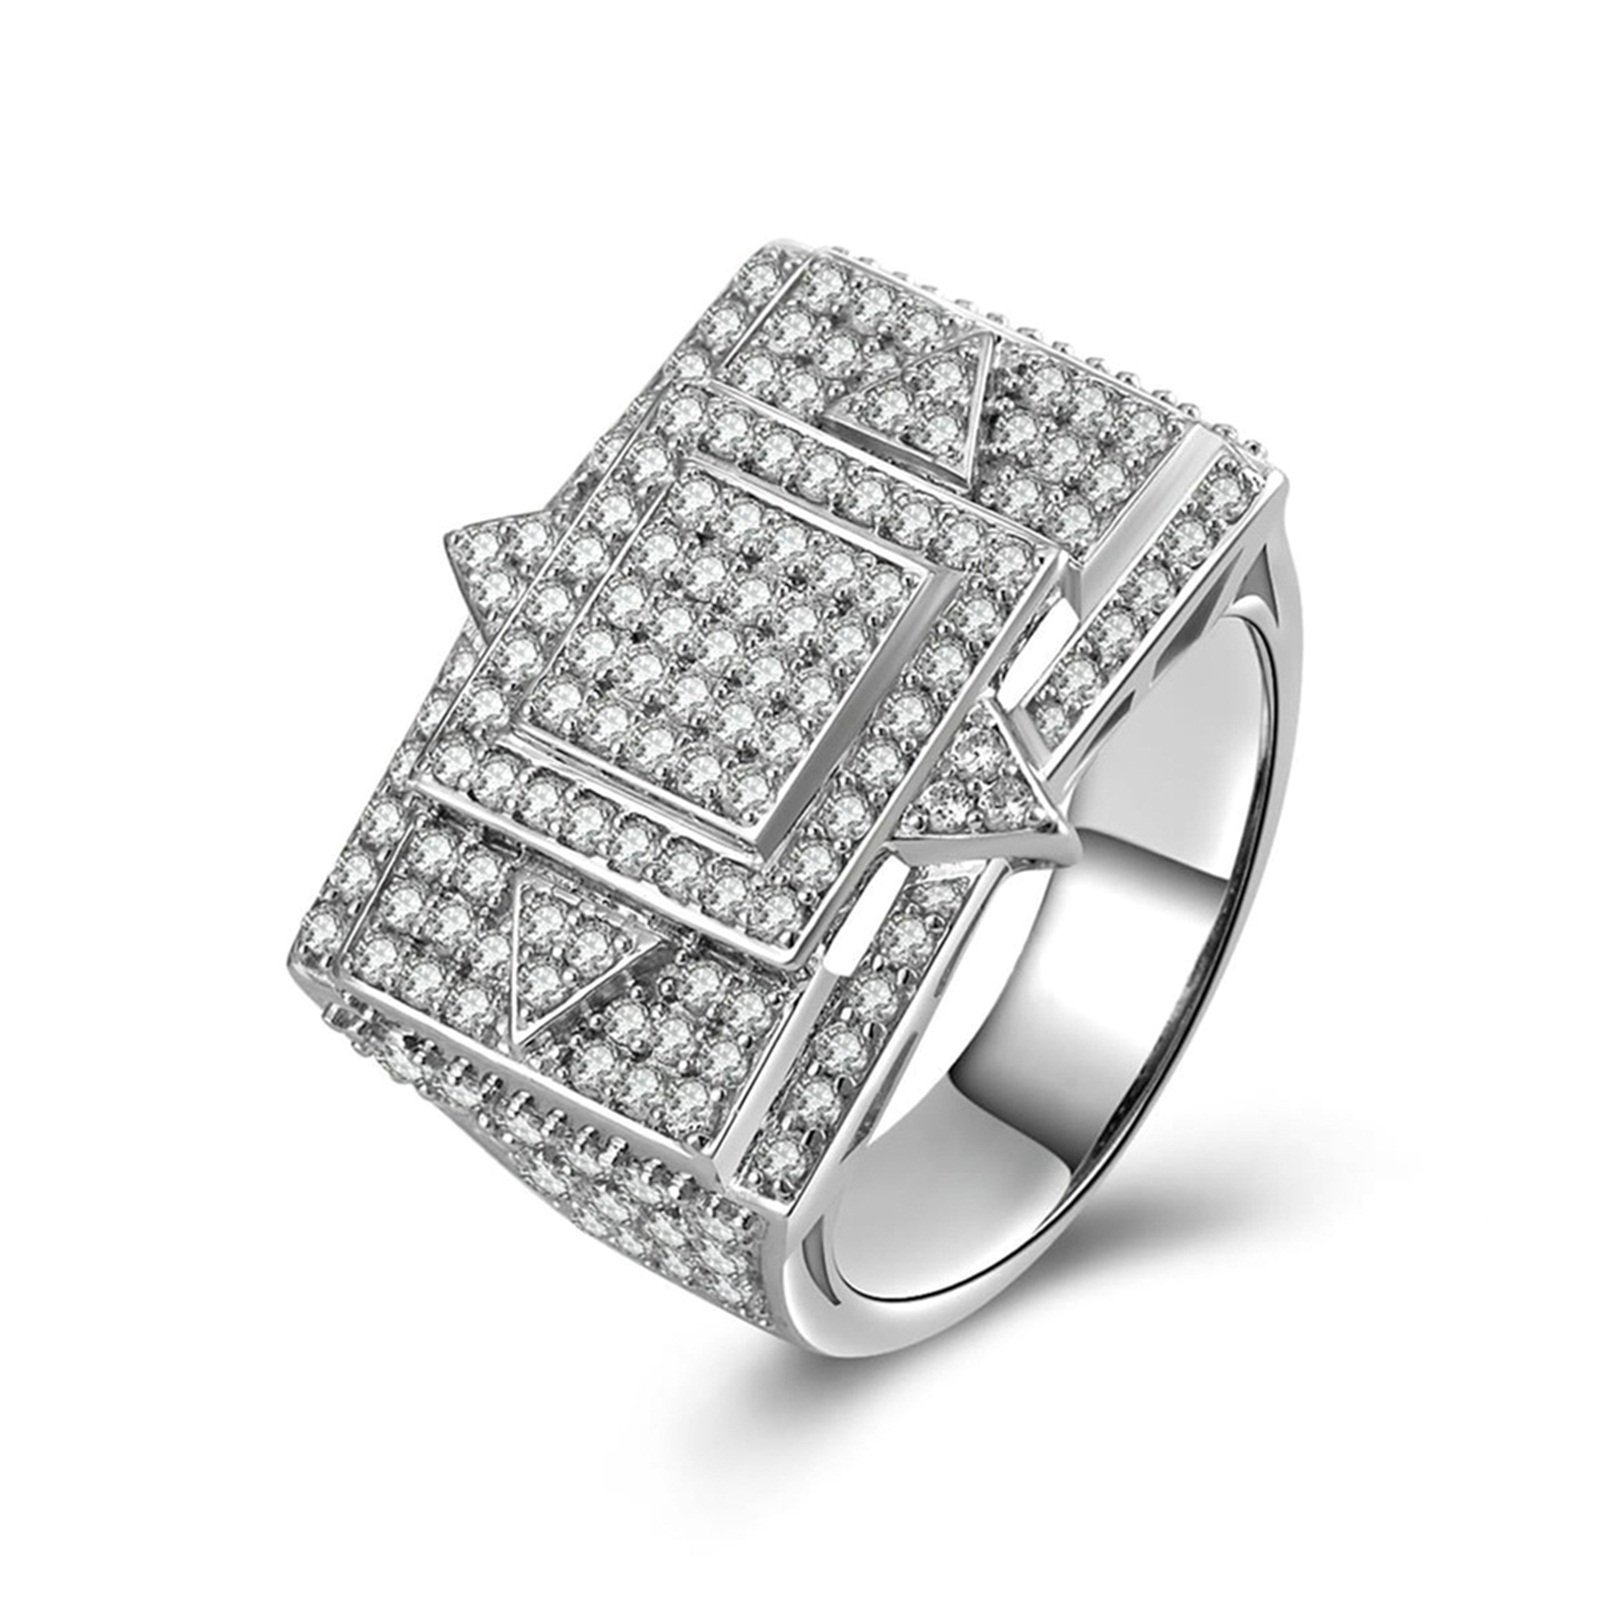 Beydodo Engagement Ring Diamond Iced Out Ring Round White Cubic Zirconia Size 9.5 Anniversary Gift